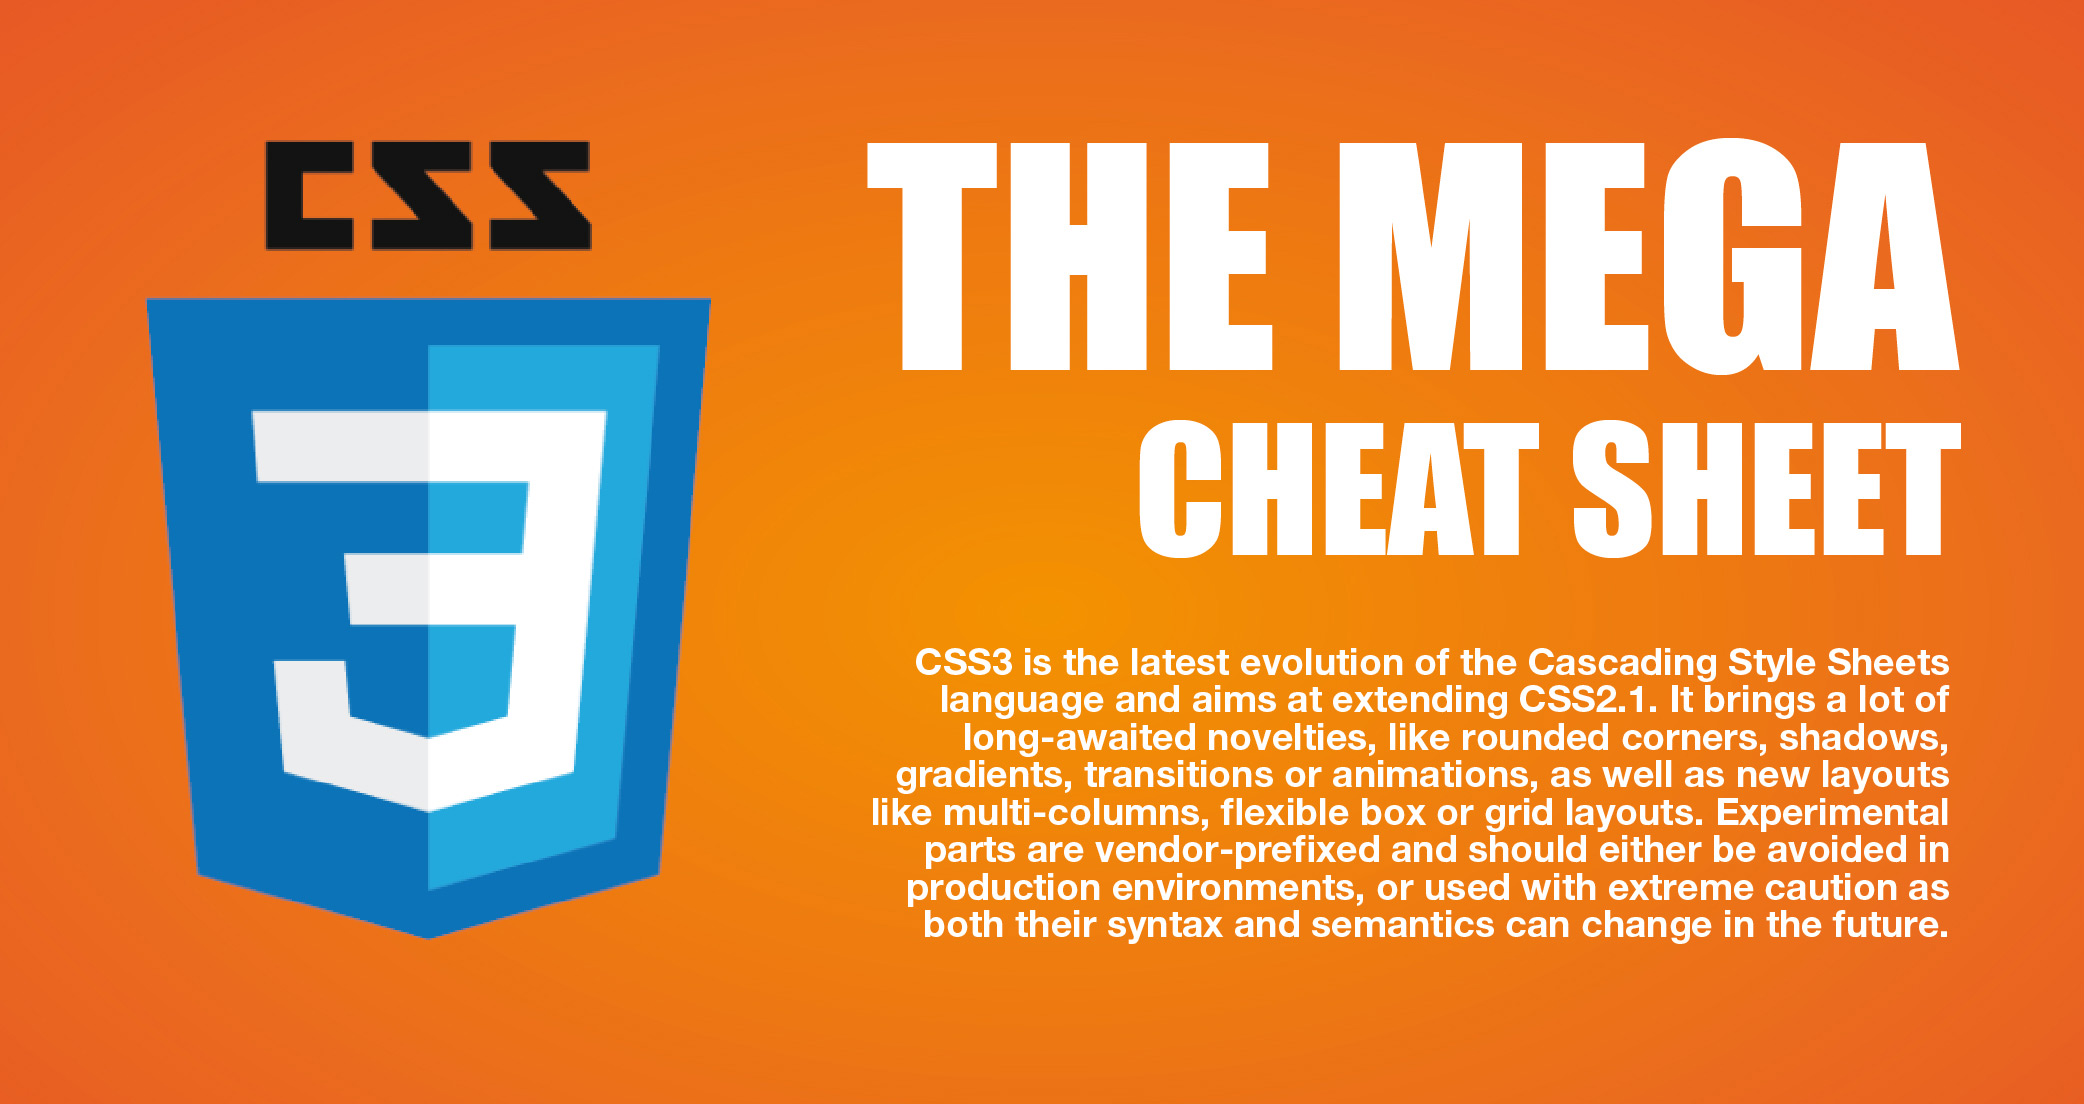 css3 cheat sheet header image